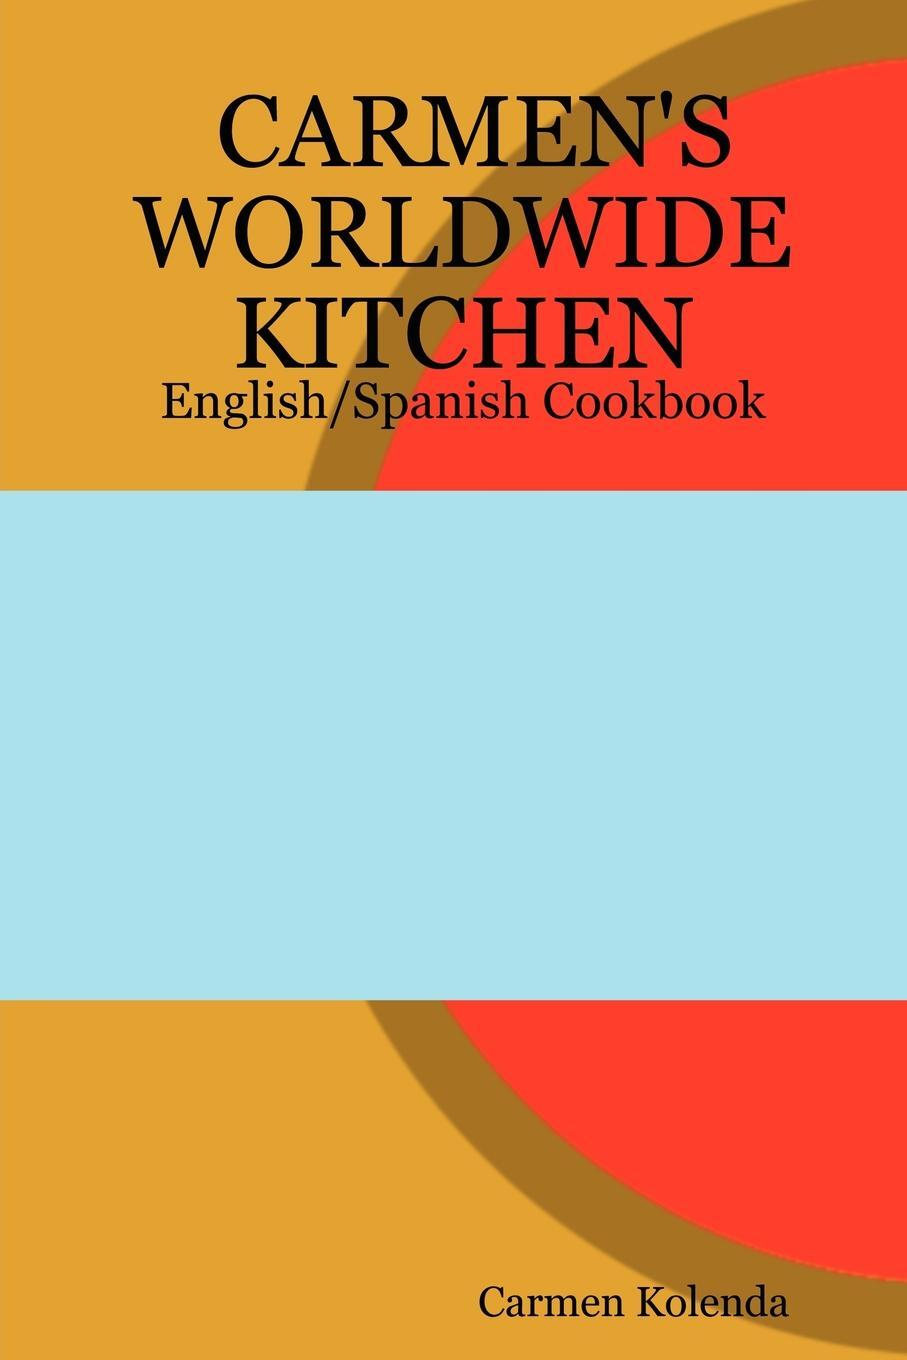 Carmen`s Worldwide Kitchen - English/Spanish Cookbook